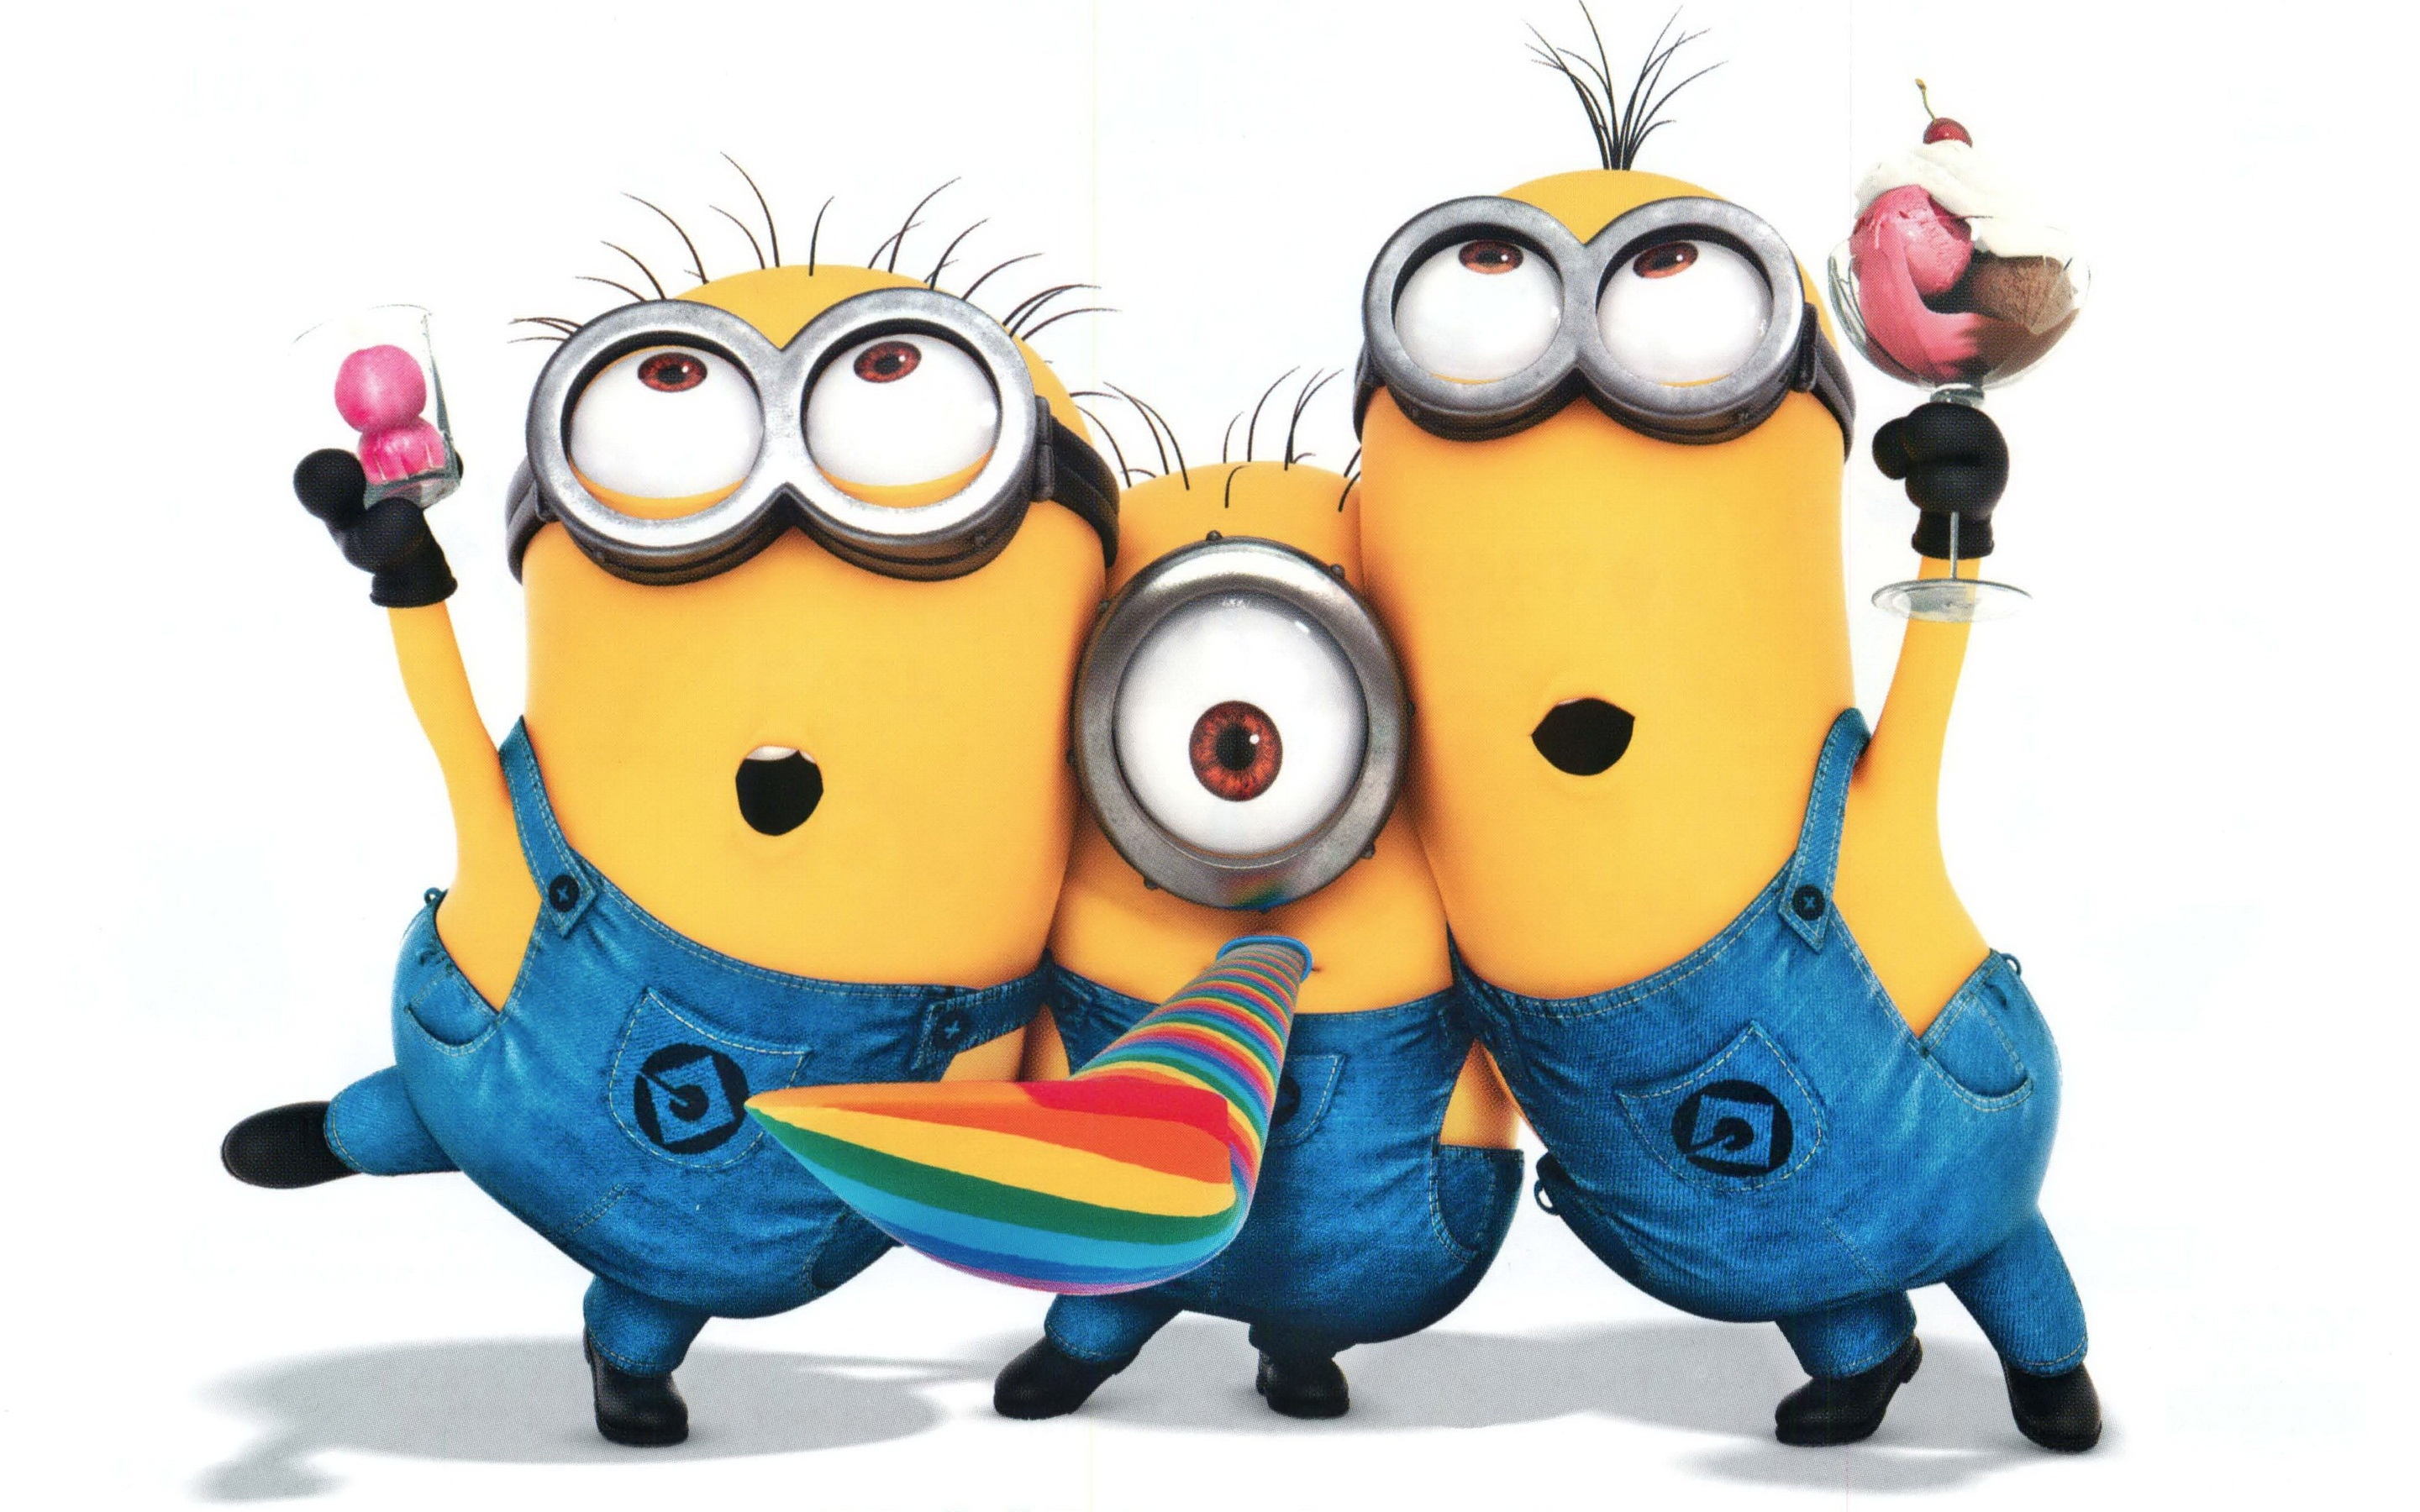 Minion cupcake clipart image free library Free Minion Cupcake Cliparts, Download Free Clip Art, Free ... image free library